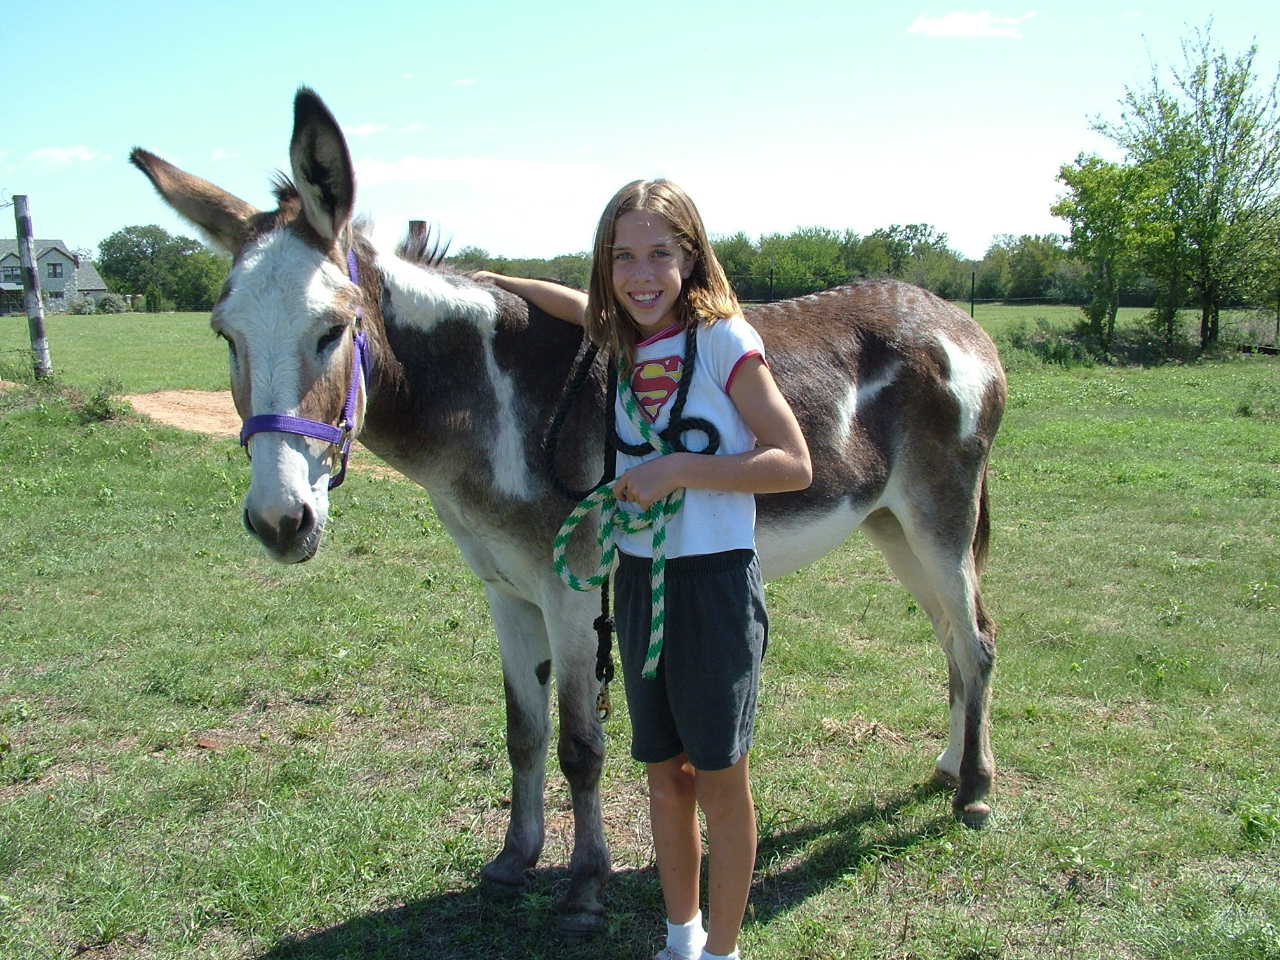 Go Green - Ride a Donkey!